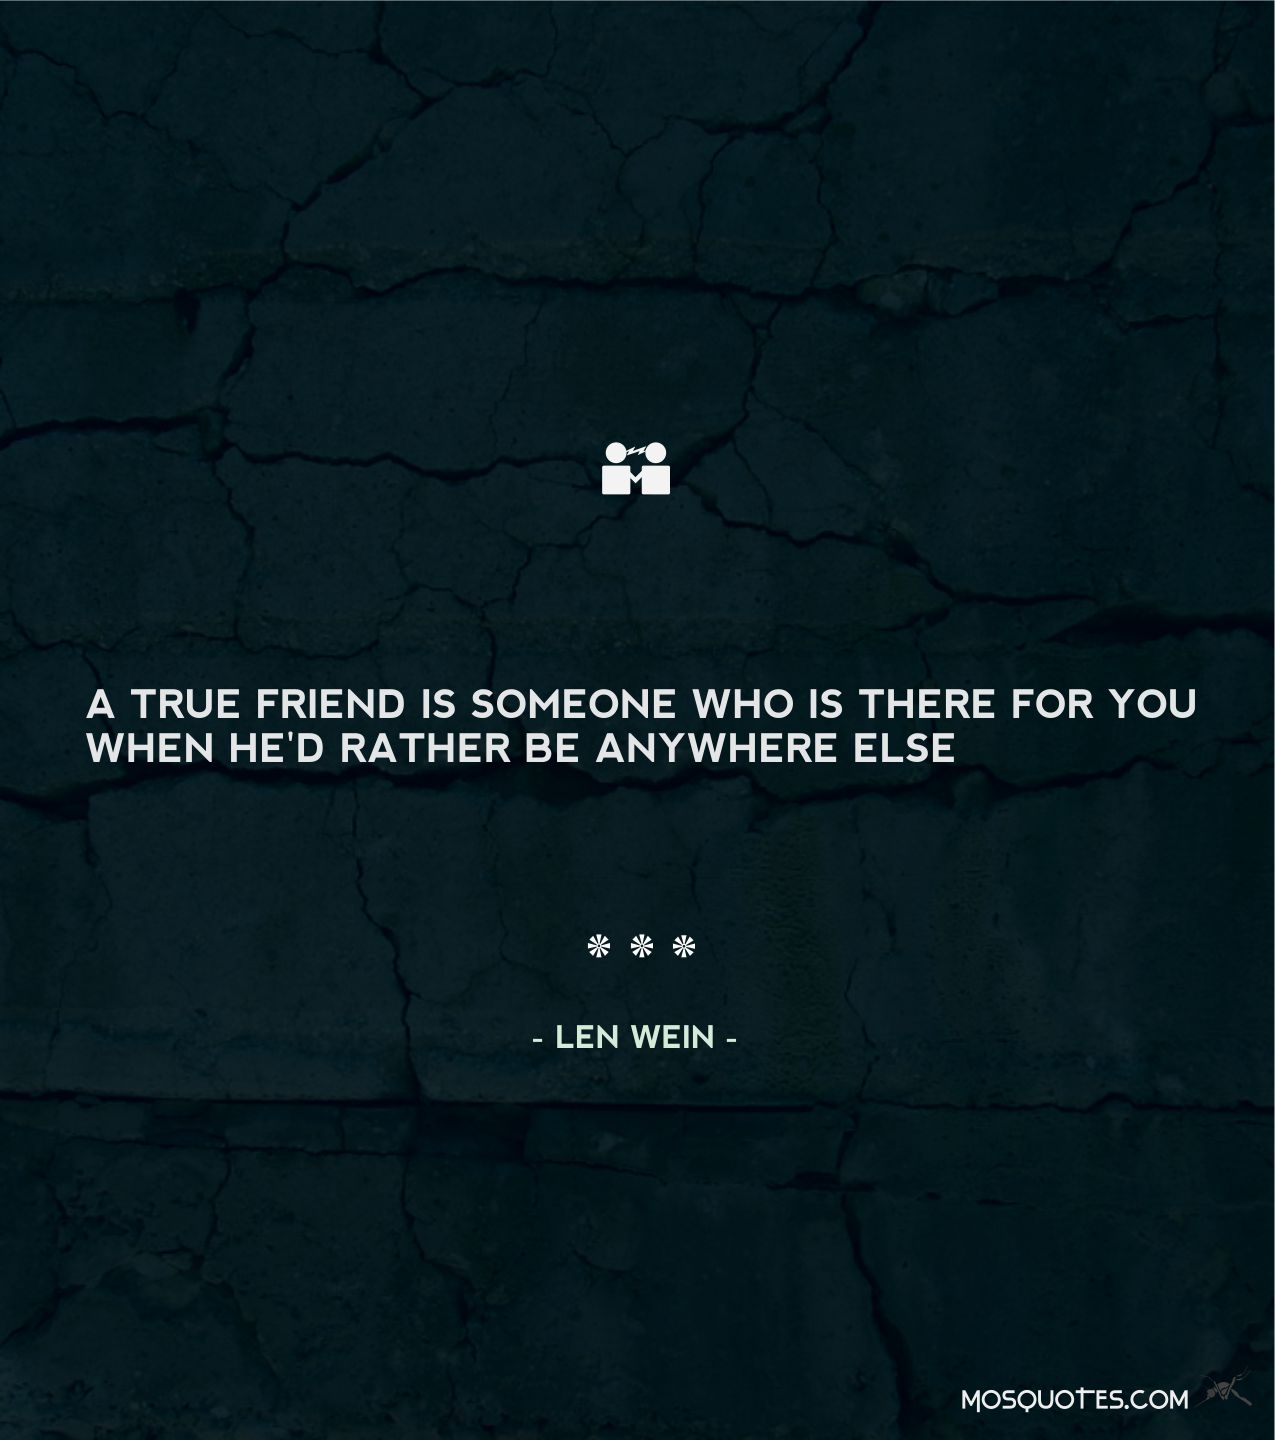 Quotes On Wah A True Friend Is: Famous Quotes About True Friendship. QuotesGram